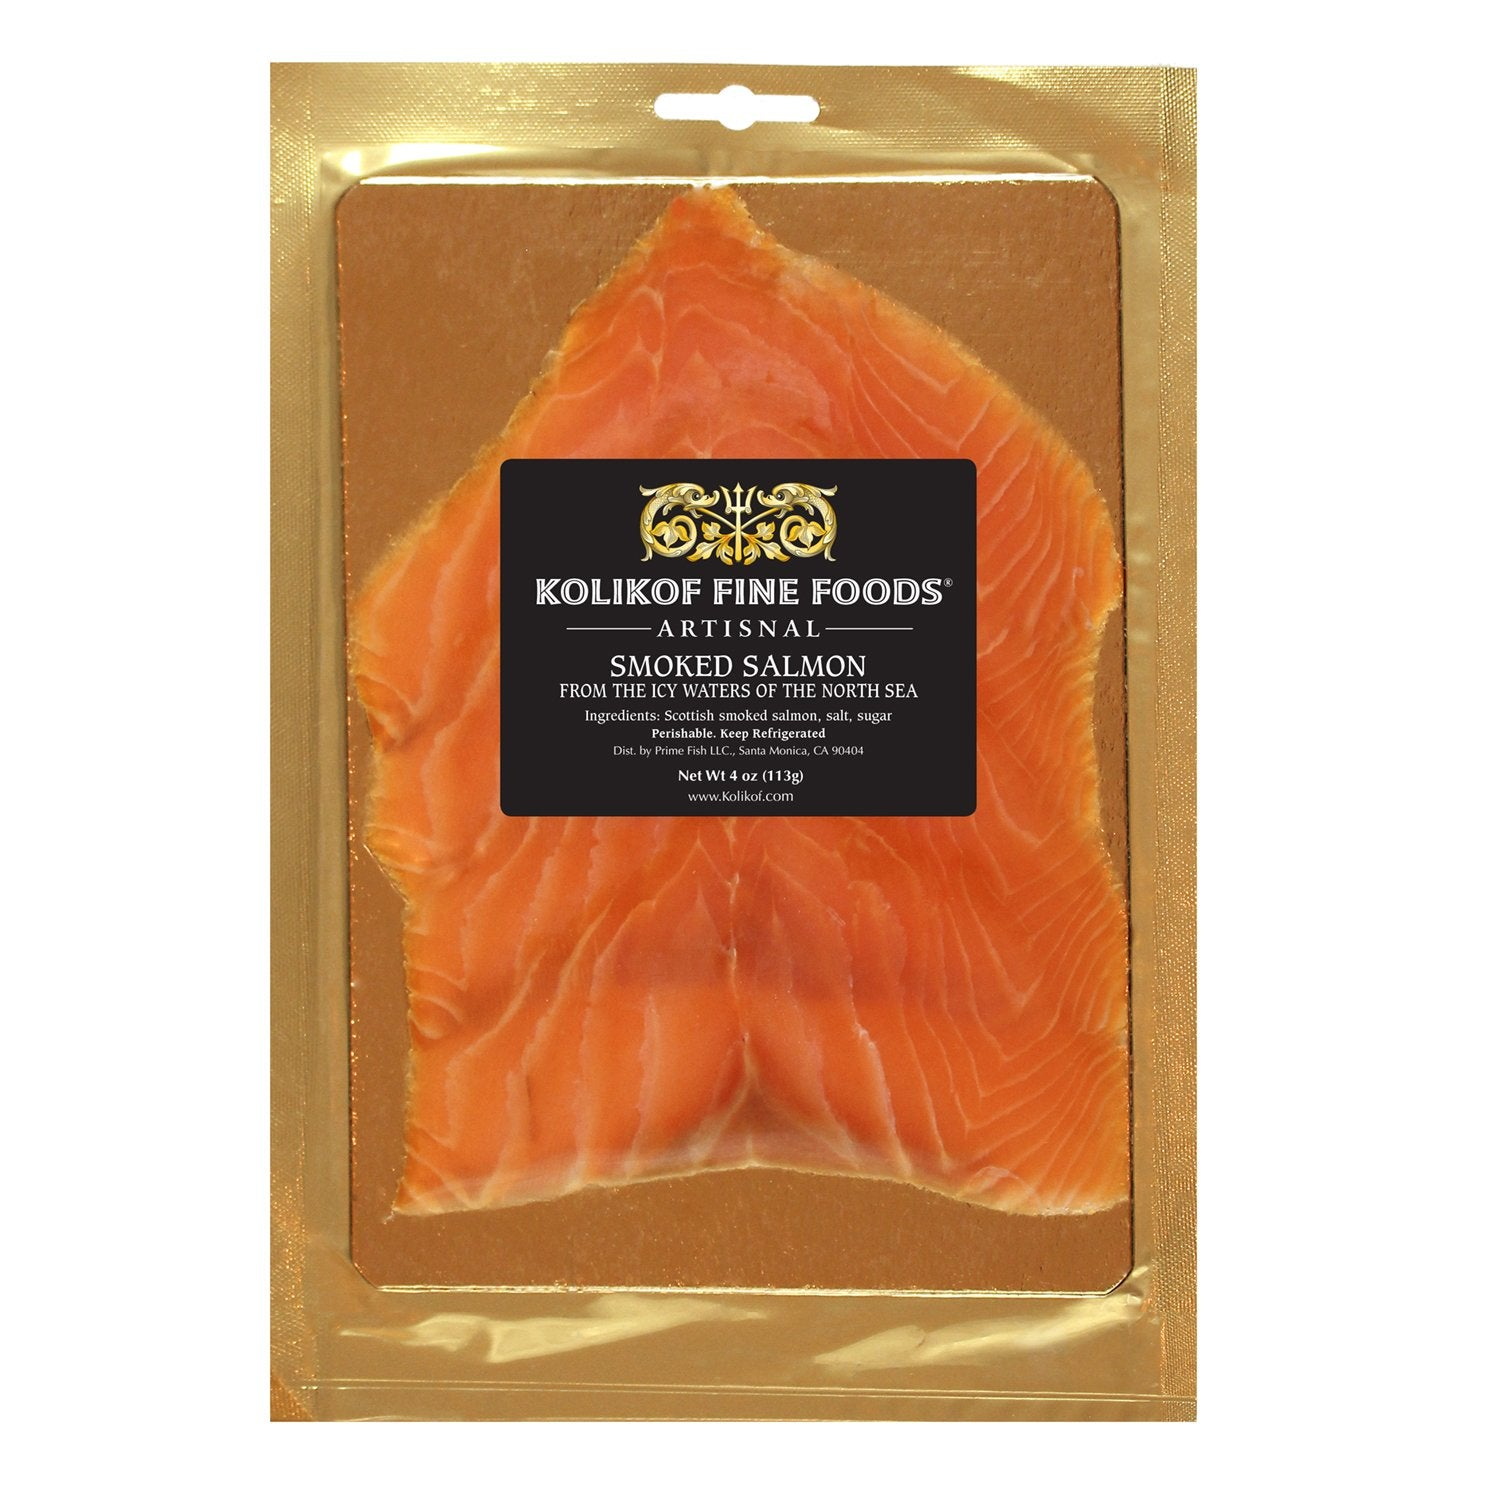 Smoked Salmon Kolikof Brand best lox D-cut 4oz